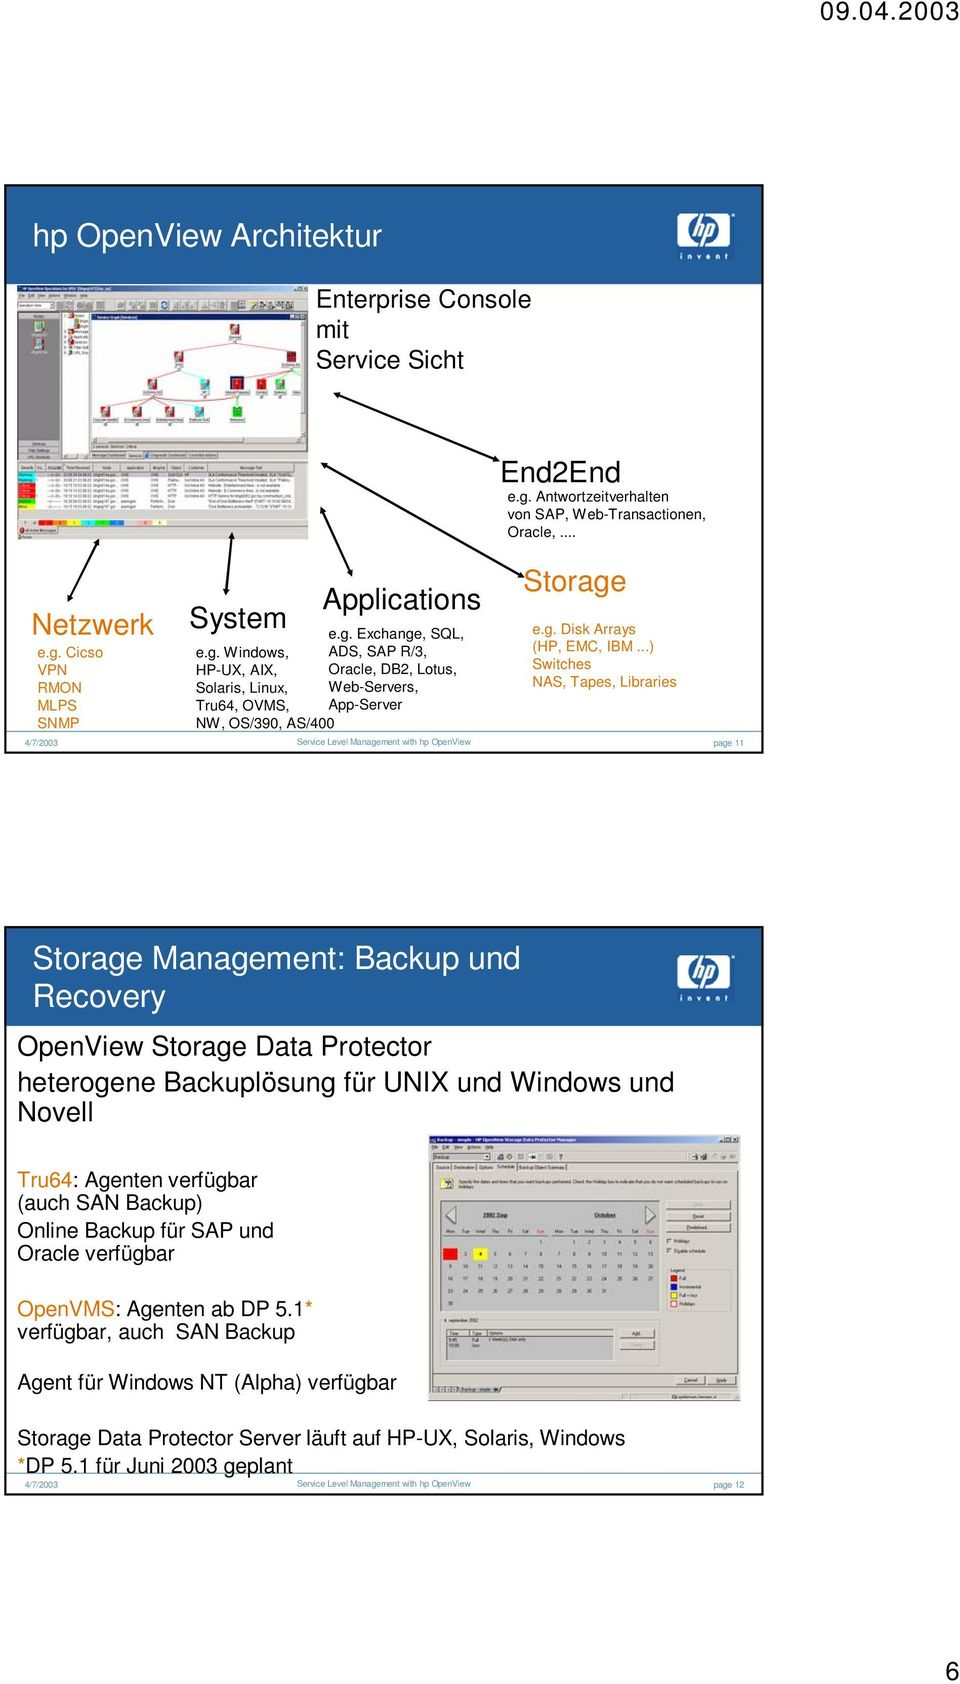 ..) Switches NAS, Tapes, Libraries page 11 Storage Management: Backup und Recovery OpenView Storage Data Protector heterogene Backuplösung für UNIX und Windows und Novell Tru64: Agenten verfügbar